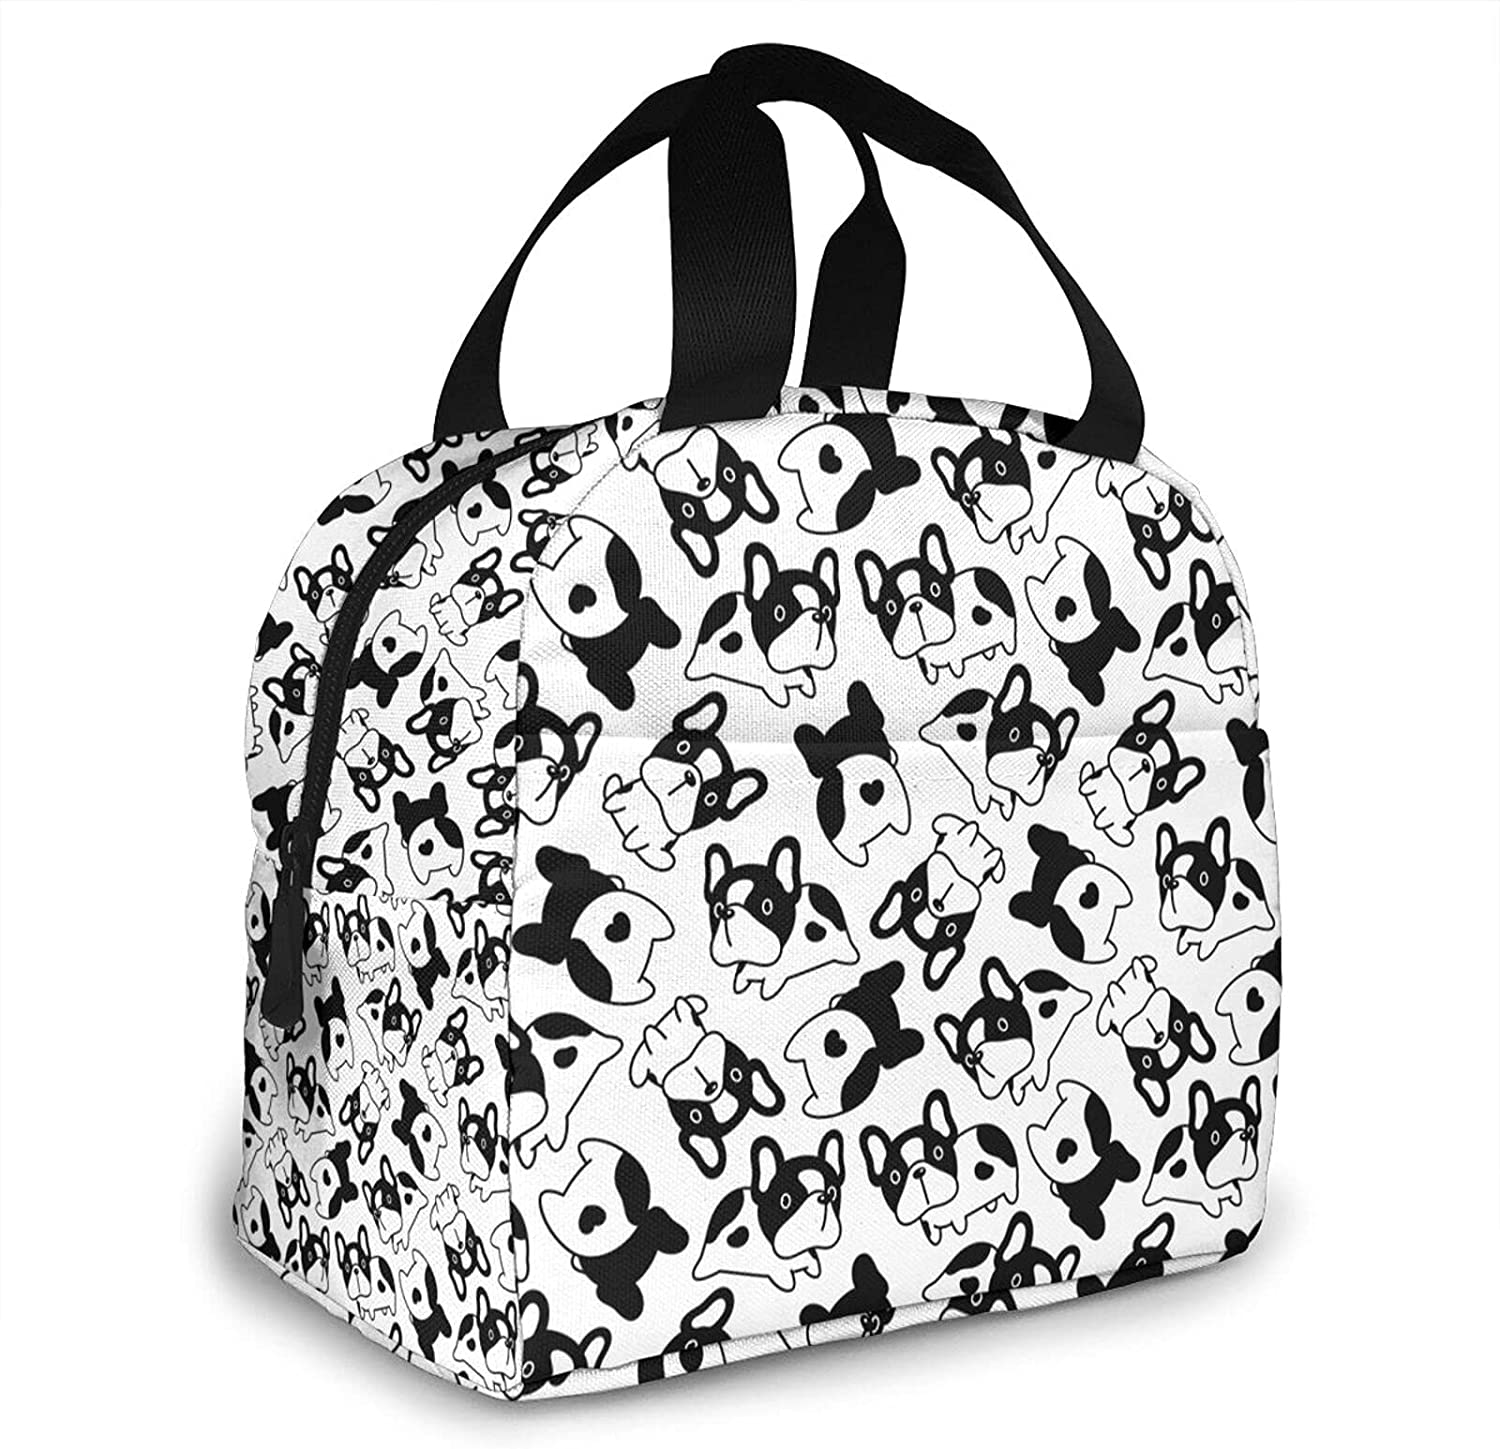 french bulldog Super sale period limited heart Lunch Bag for Travel Bombing new work Cooler Insulated